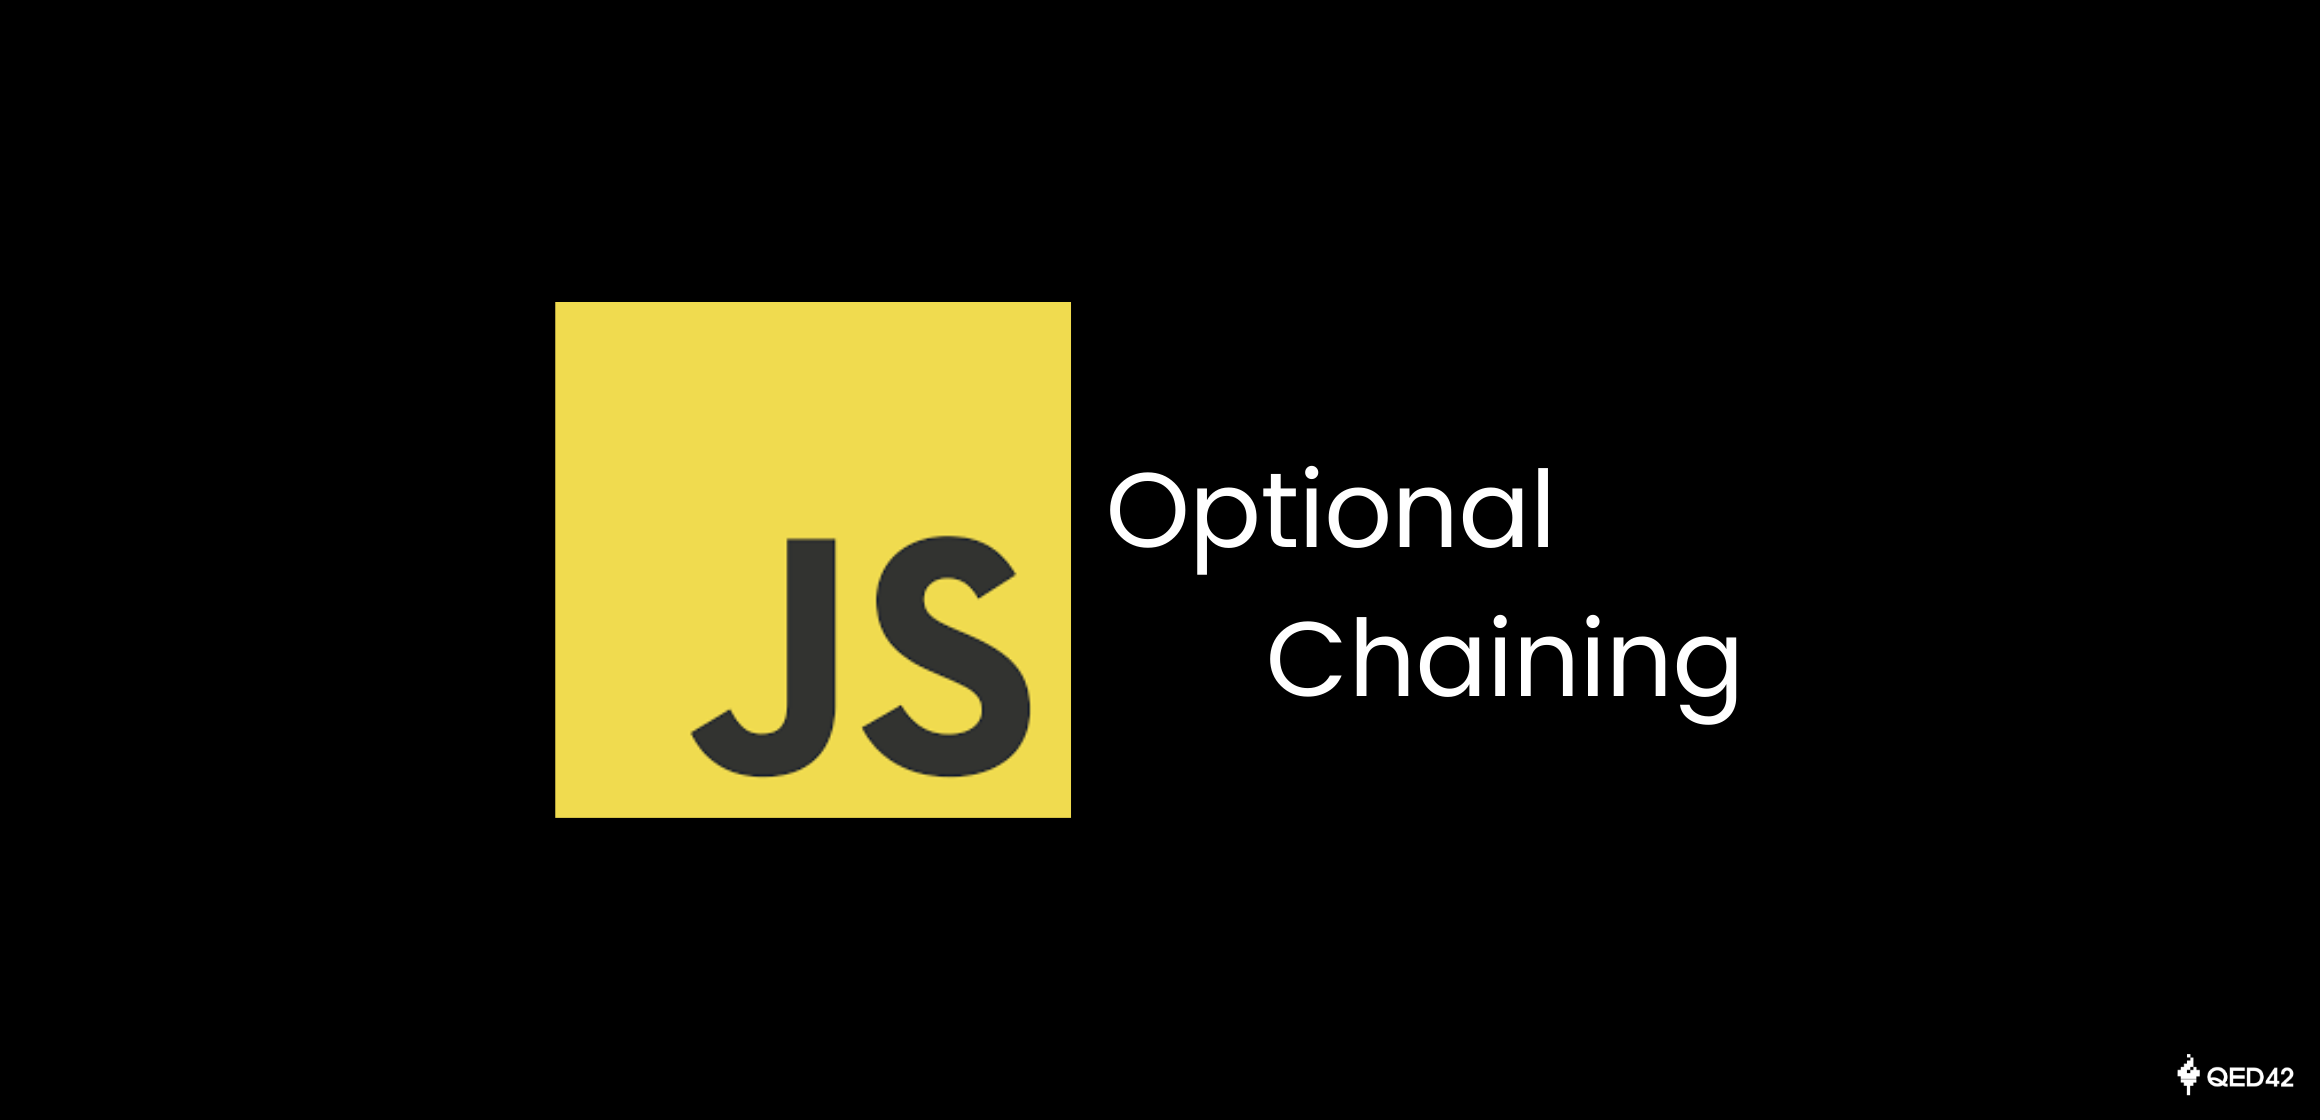 Optional Chaining Operator in JavaScript